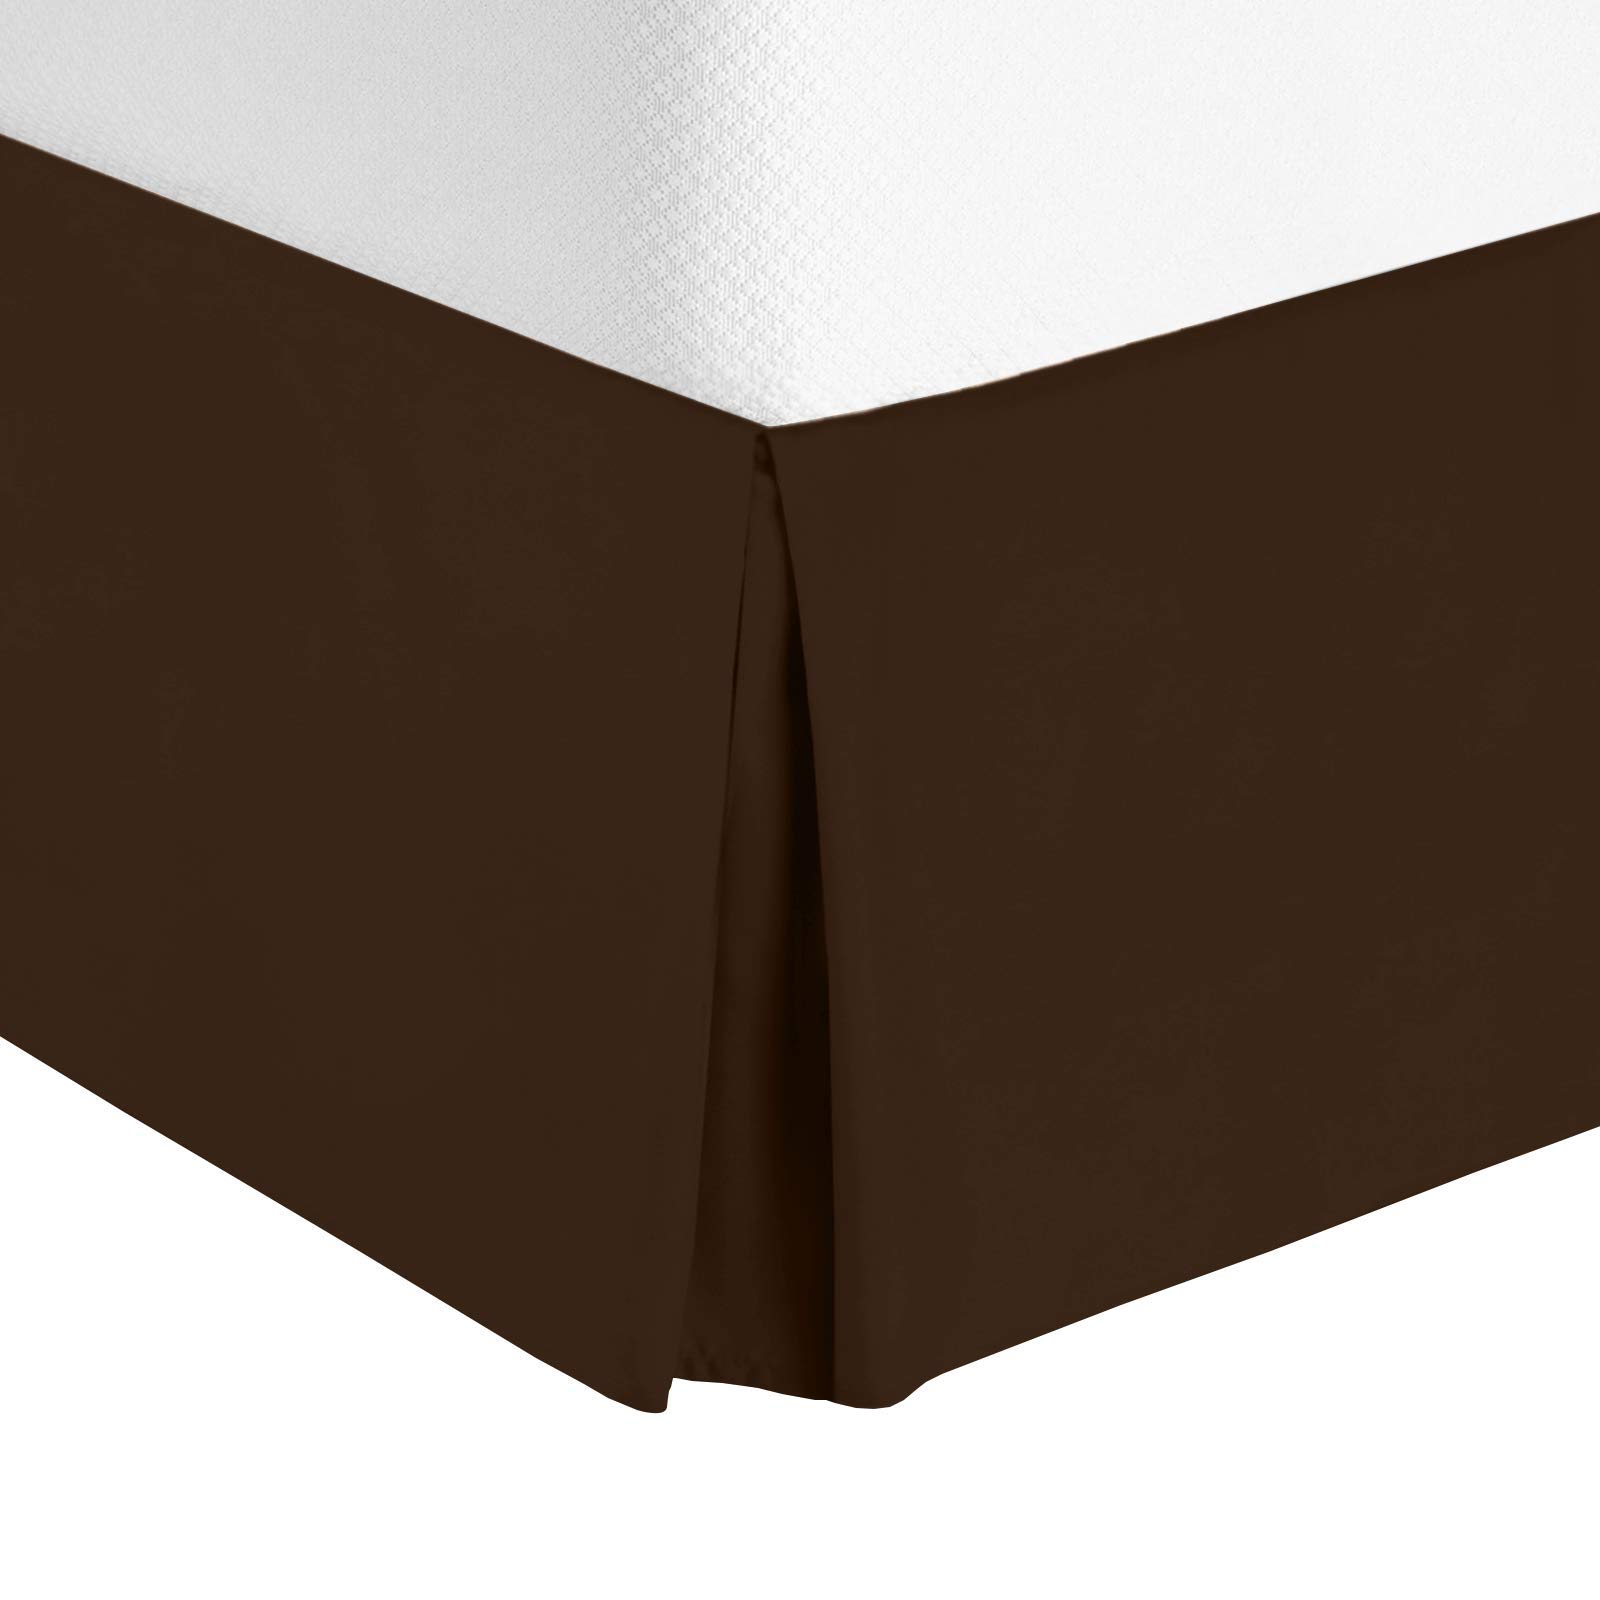 Nestl Bedding Pleated Bed Skirt - Luxury Microfiber Dust, Dark Brown, Size King by Nestl Bedding